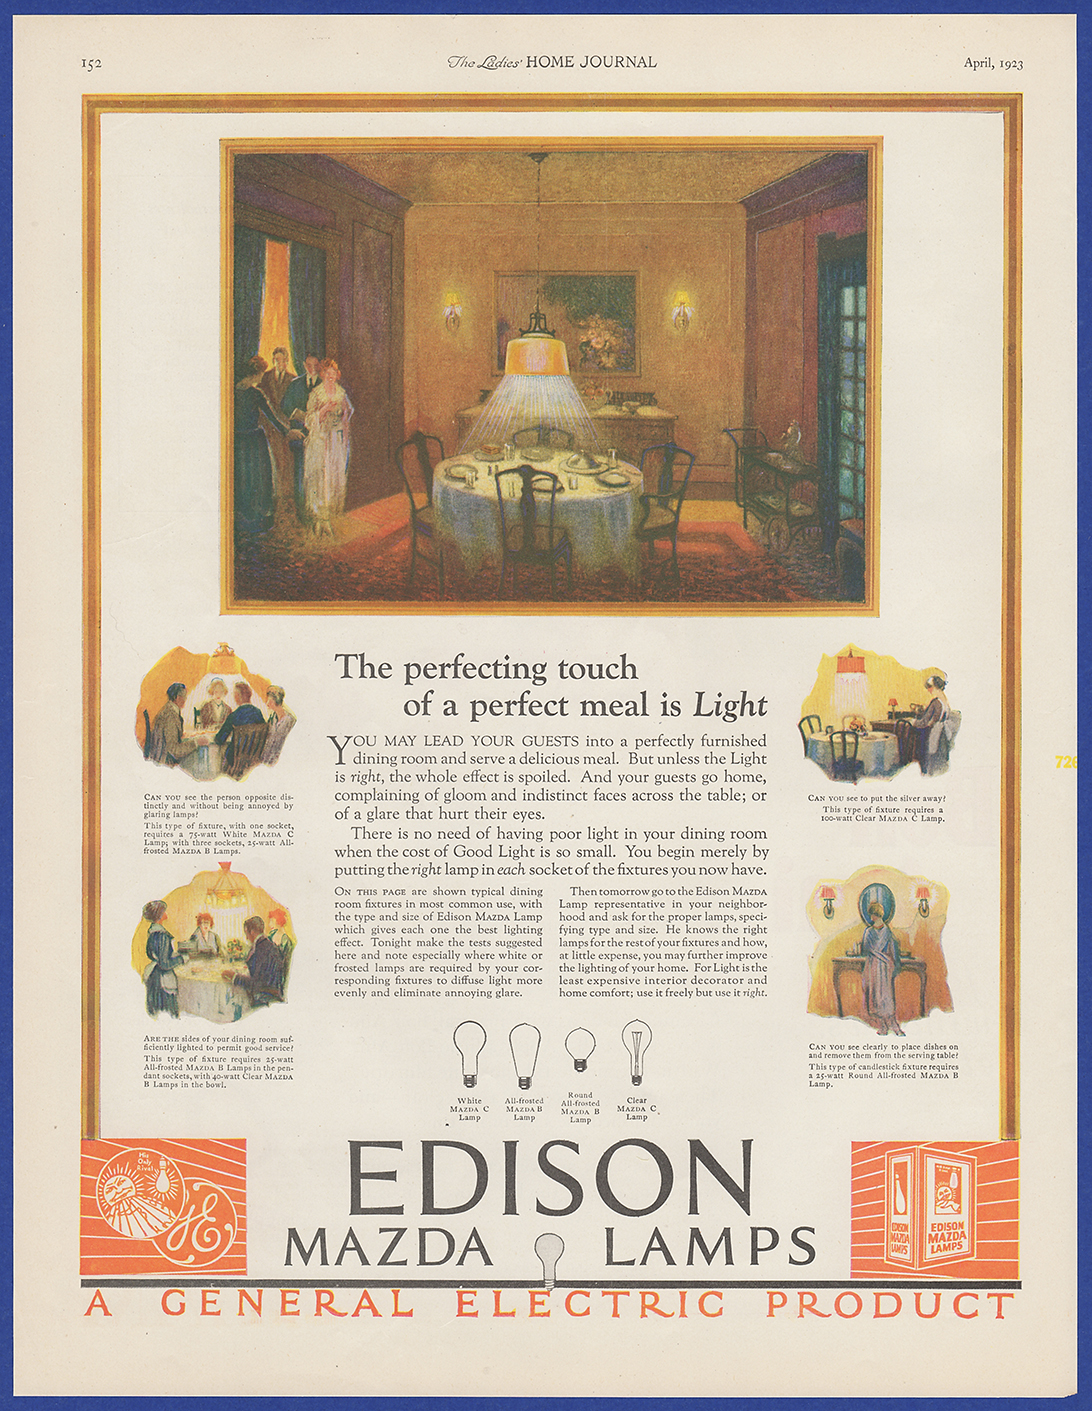 Details about Vintage 1923 EDISON Mazda Lamps Light Bulbs General Electric  Print Ad 1920's